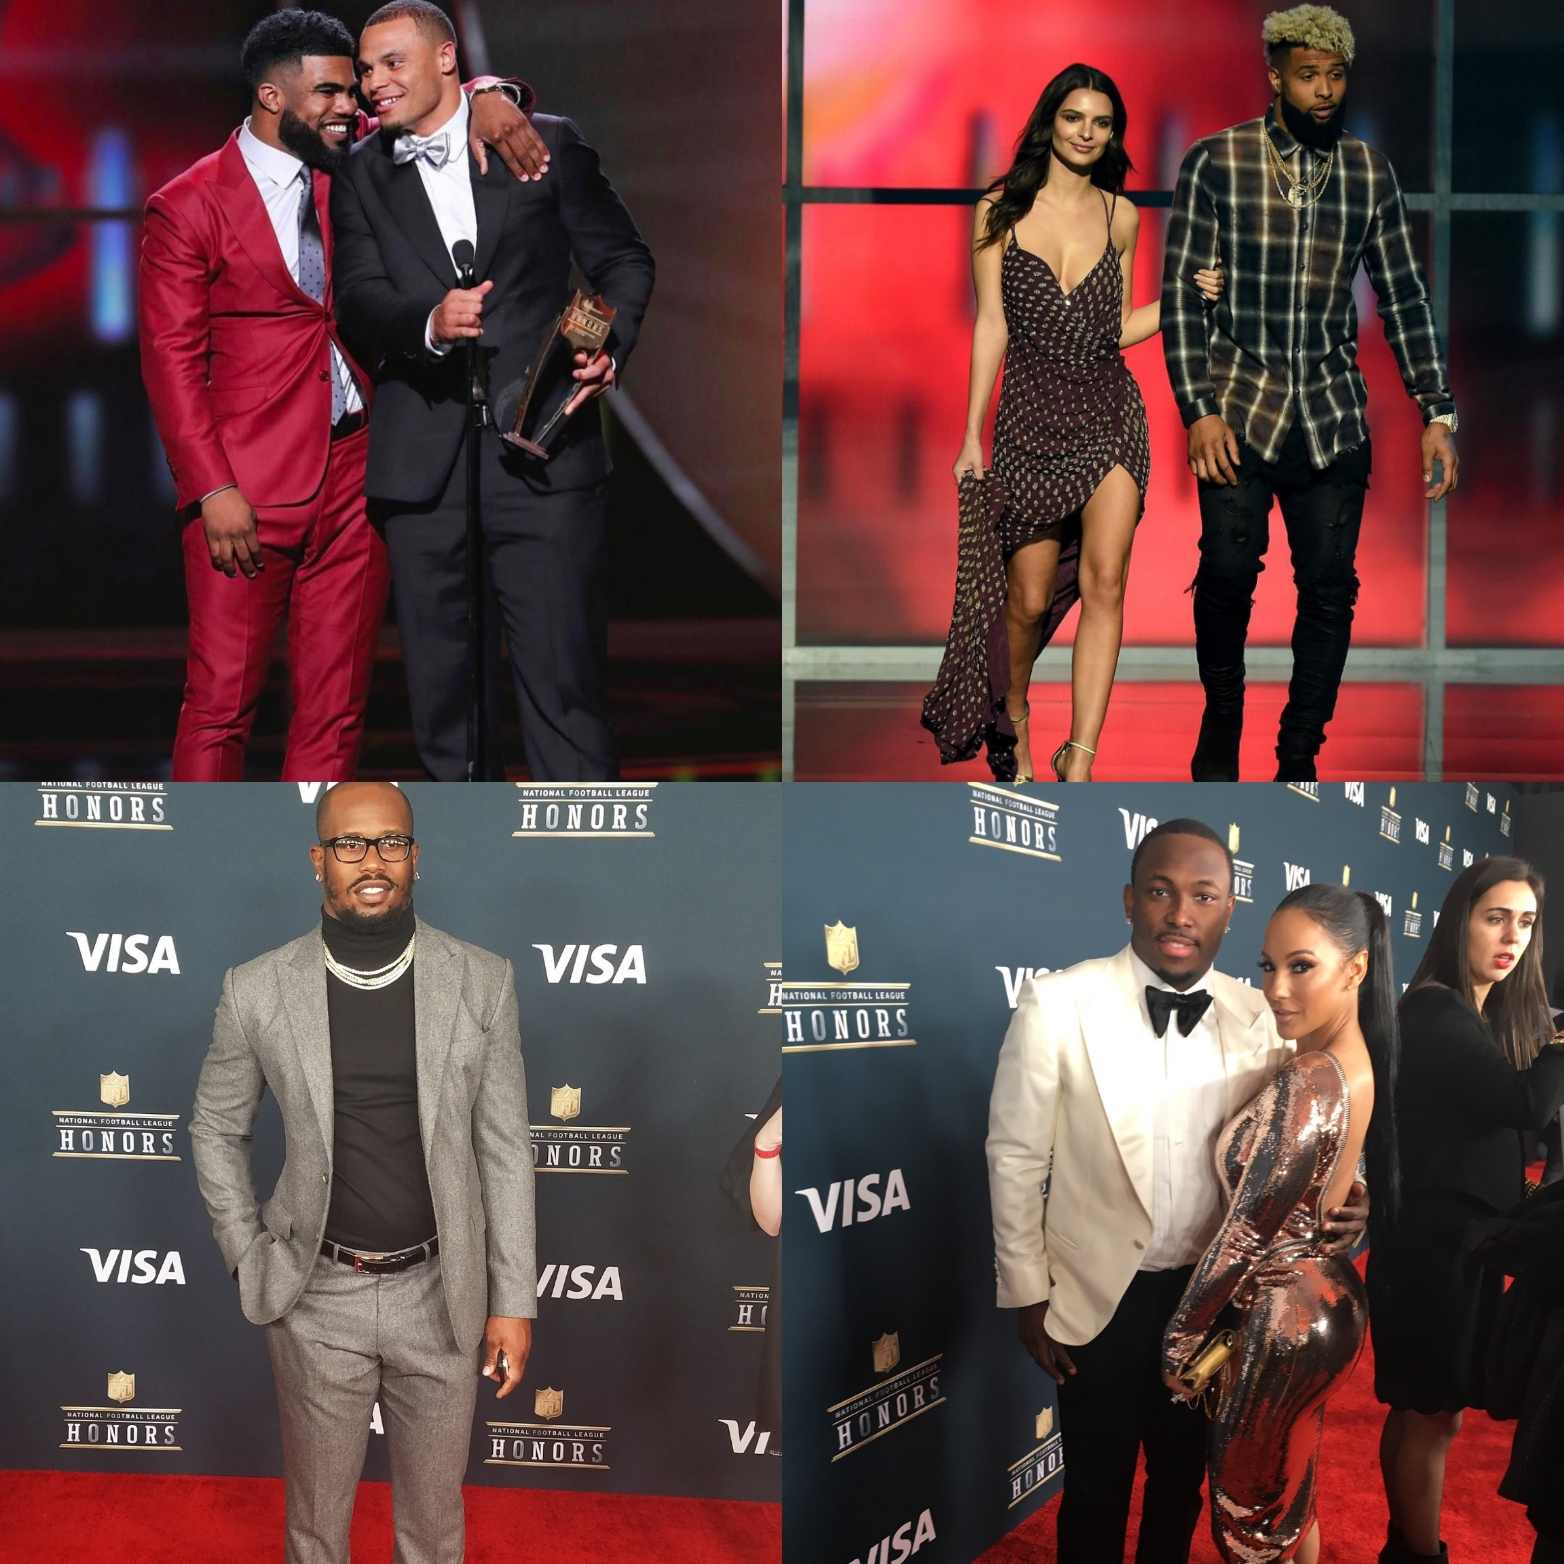 2017 NFL Honors' Best-Dressed Athletes: Odell Beckham Jr., Von Miller, And More